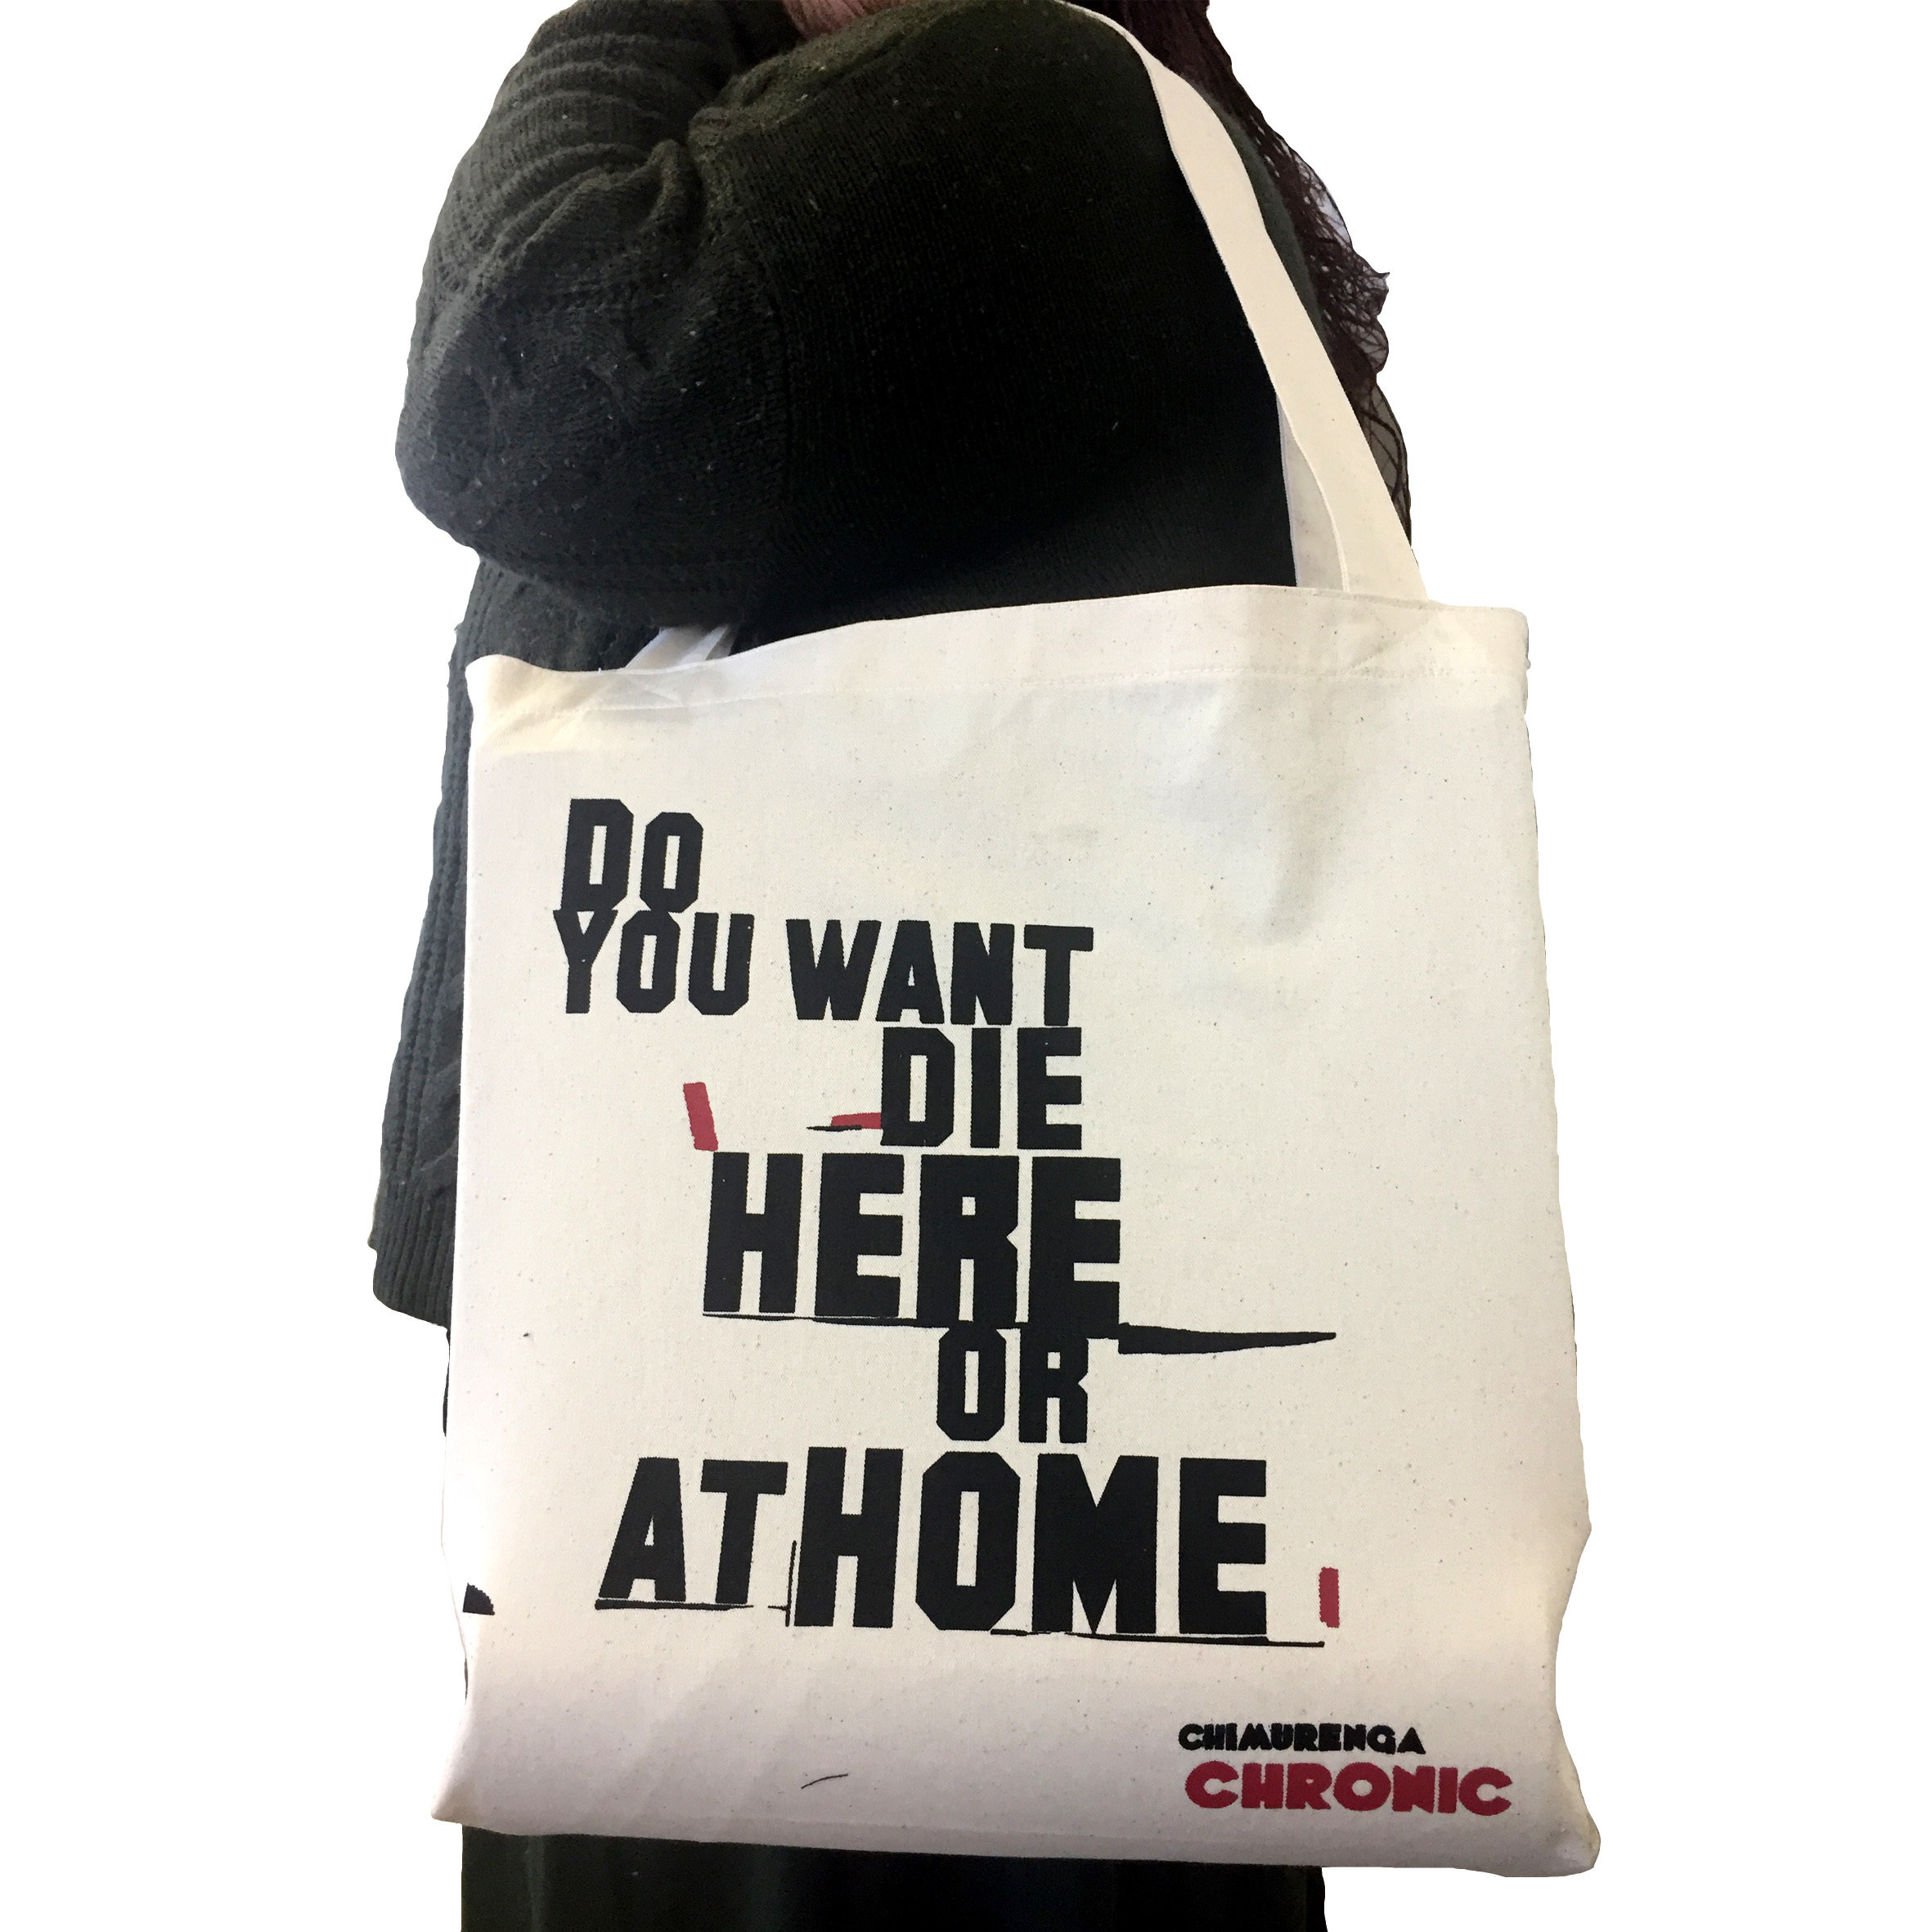 Chimurenga Chronic Tote Bag – Do you want to die here or at home CCTB02